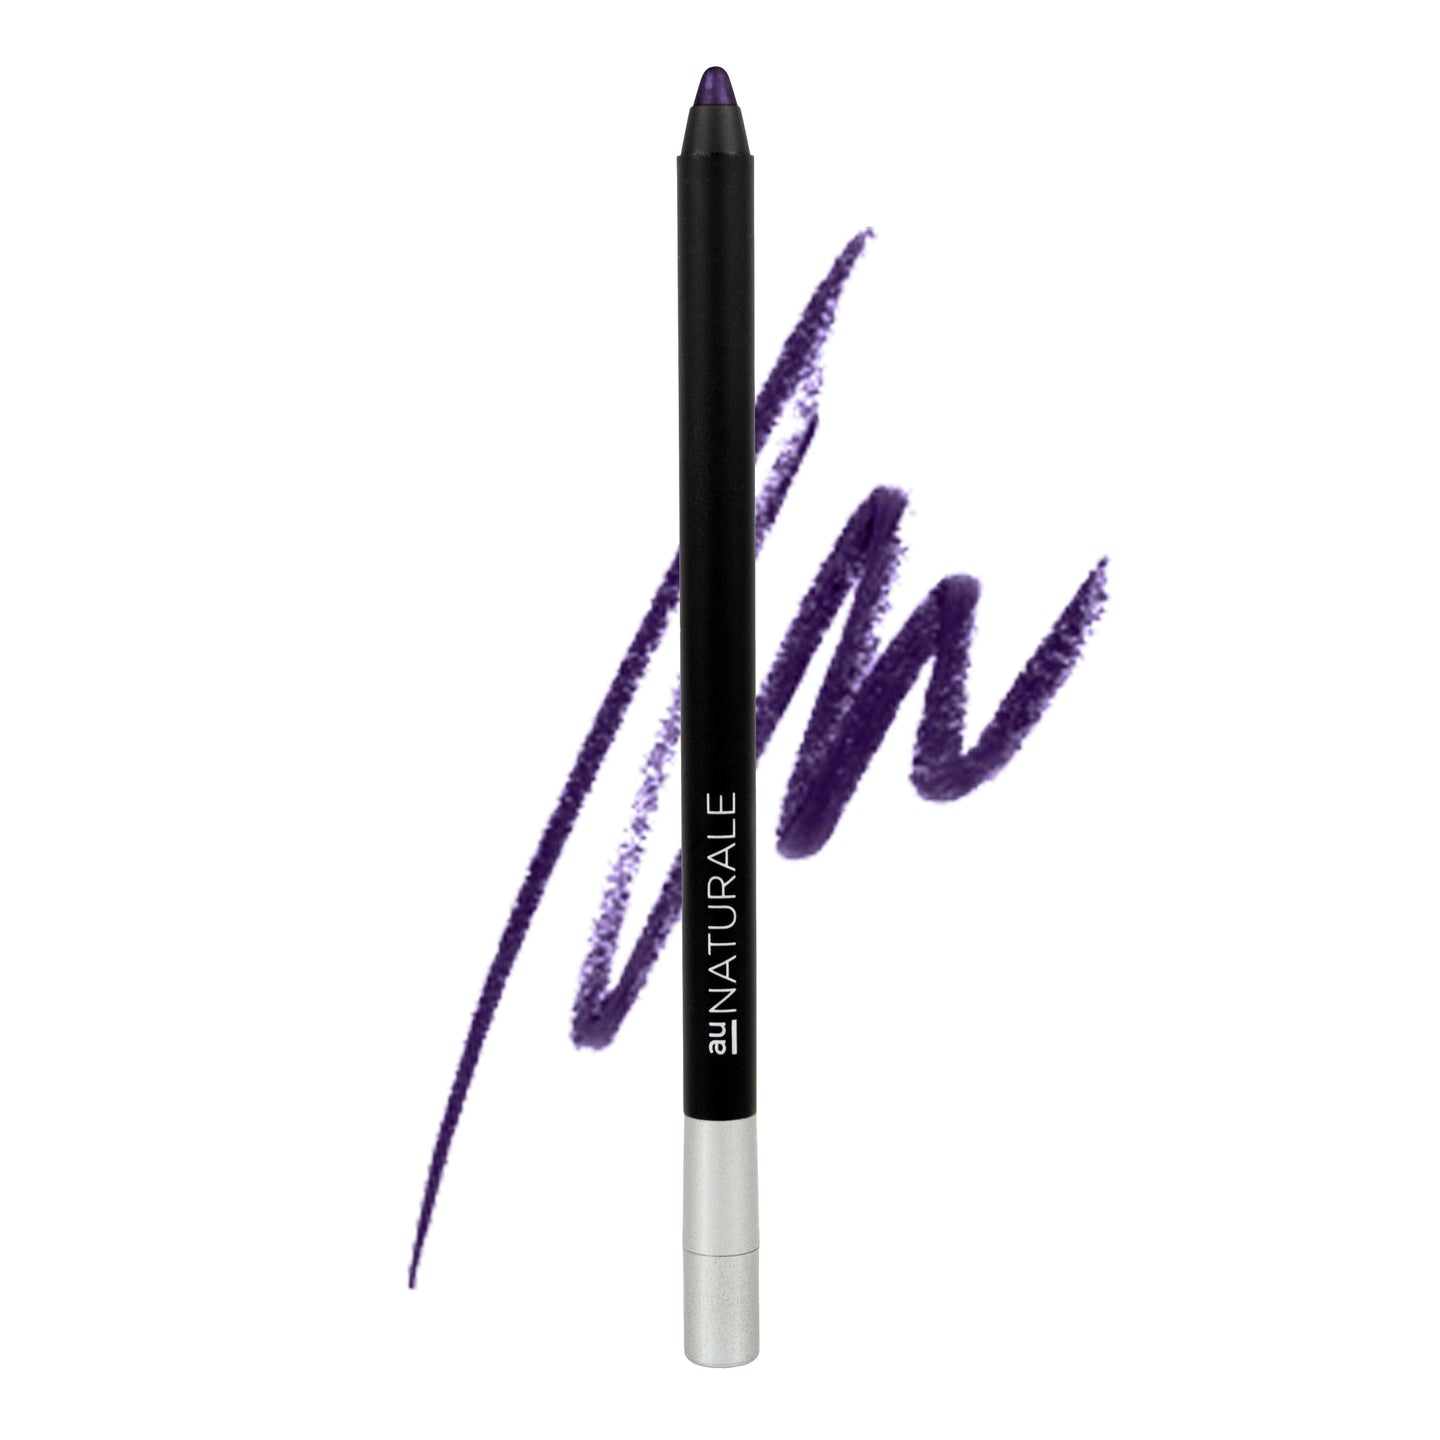 Shop Swipe-On Essential Eye Pencil in Amethyst by Au Naturale Cosmetics - Lets make it a trend #explorebeautiful